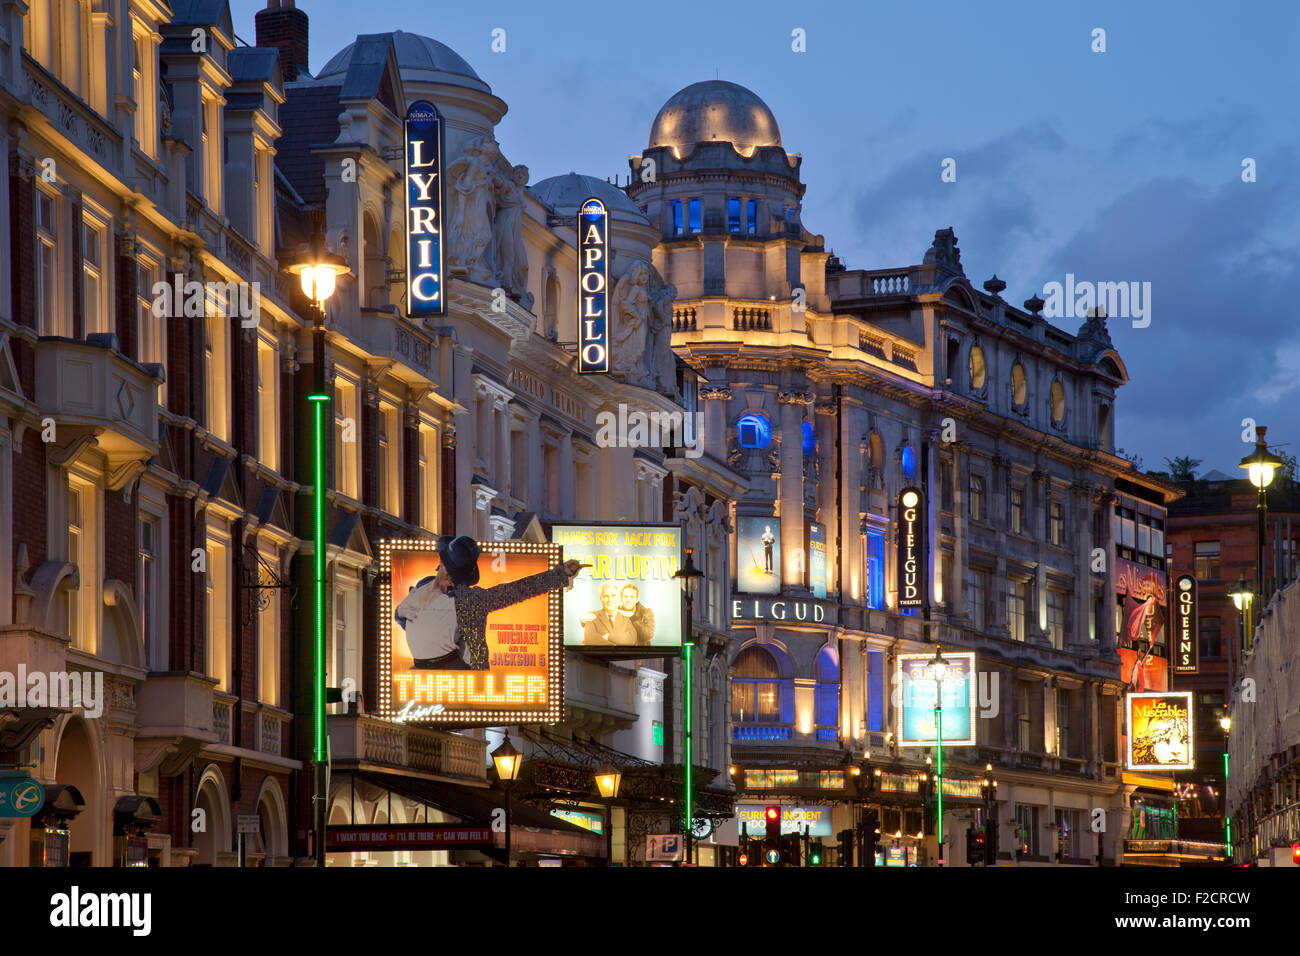 London Theatreland at night, Shaftesbury Avenue - Stock Image